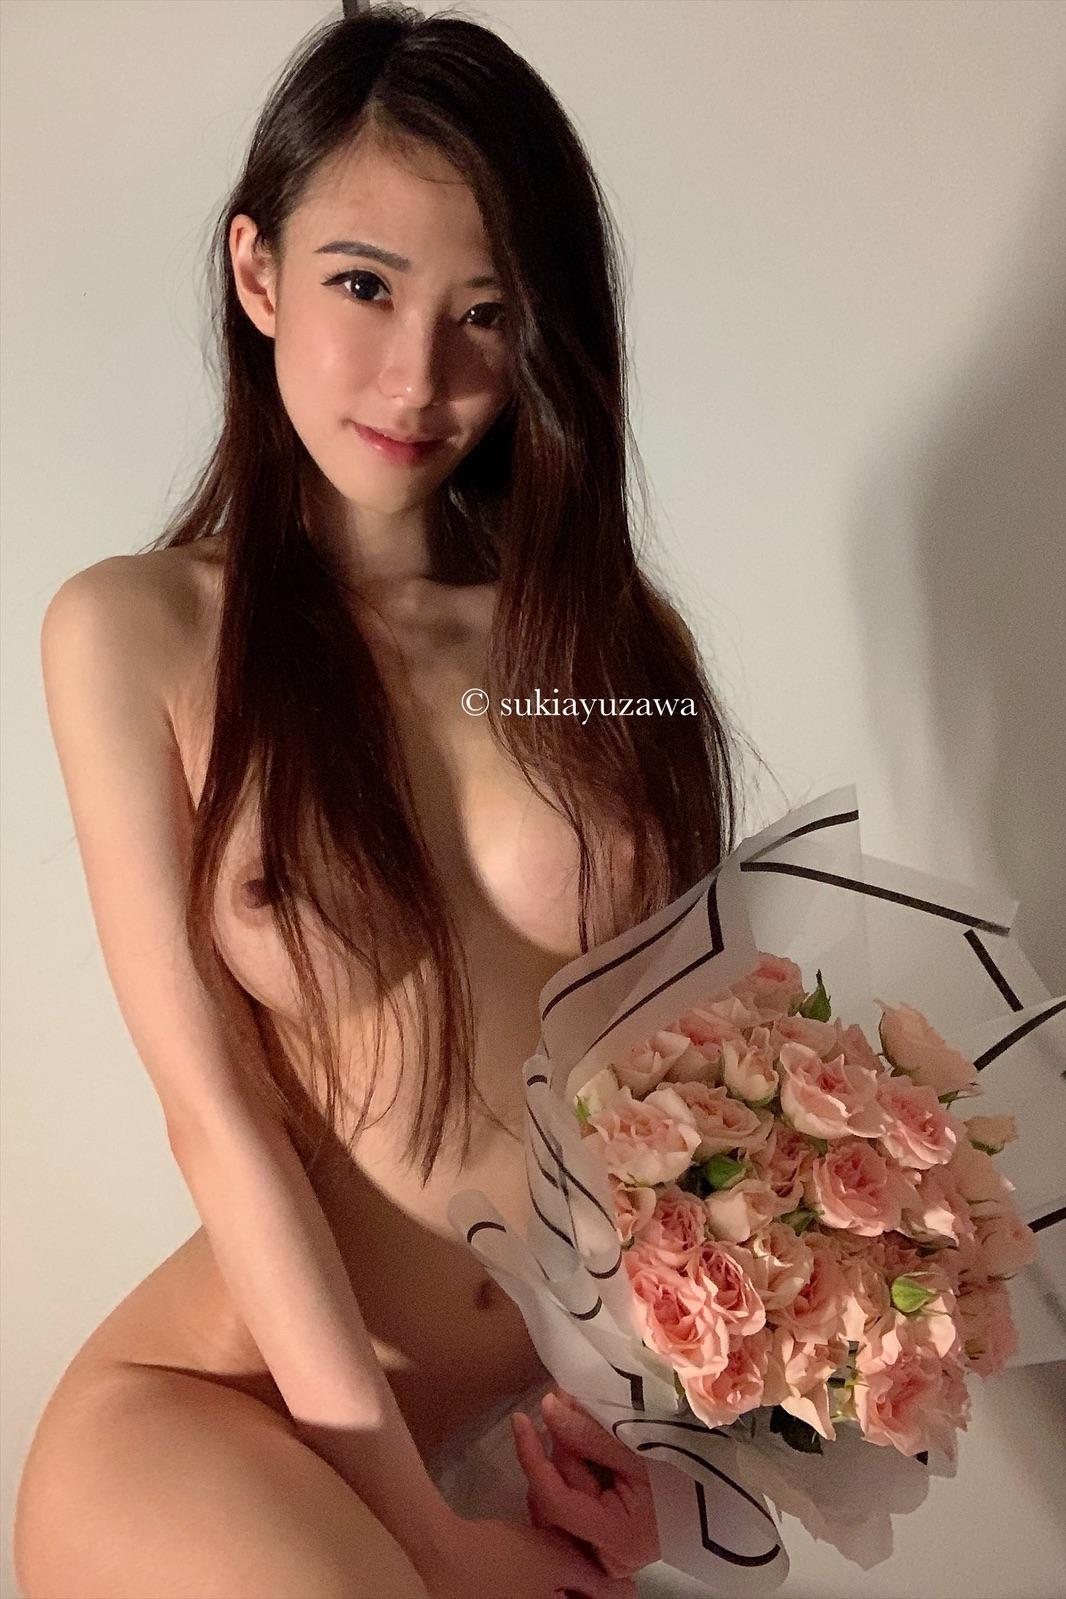 Prepared something wilder than usual for u  what would u plan for Valentine's if u saw me like this?